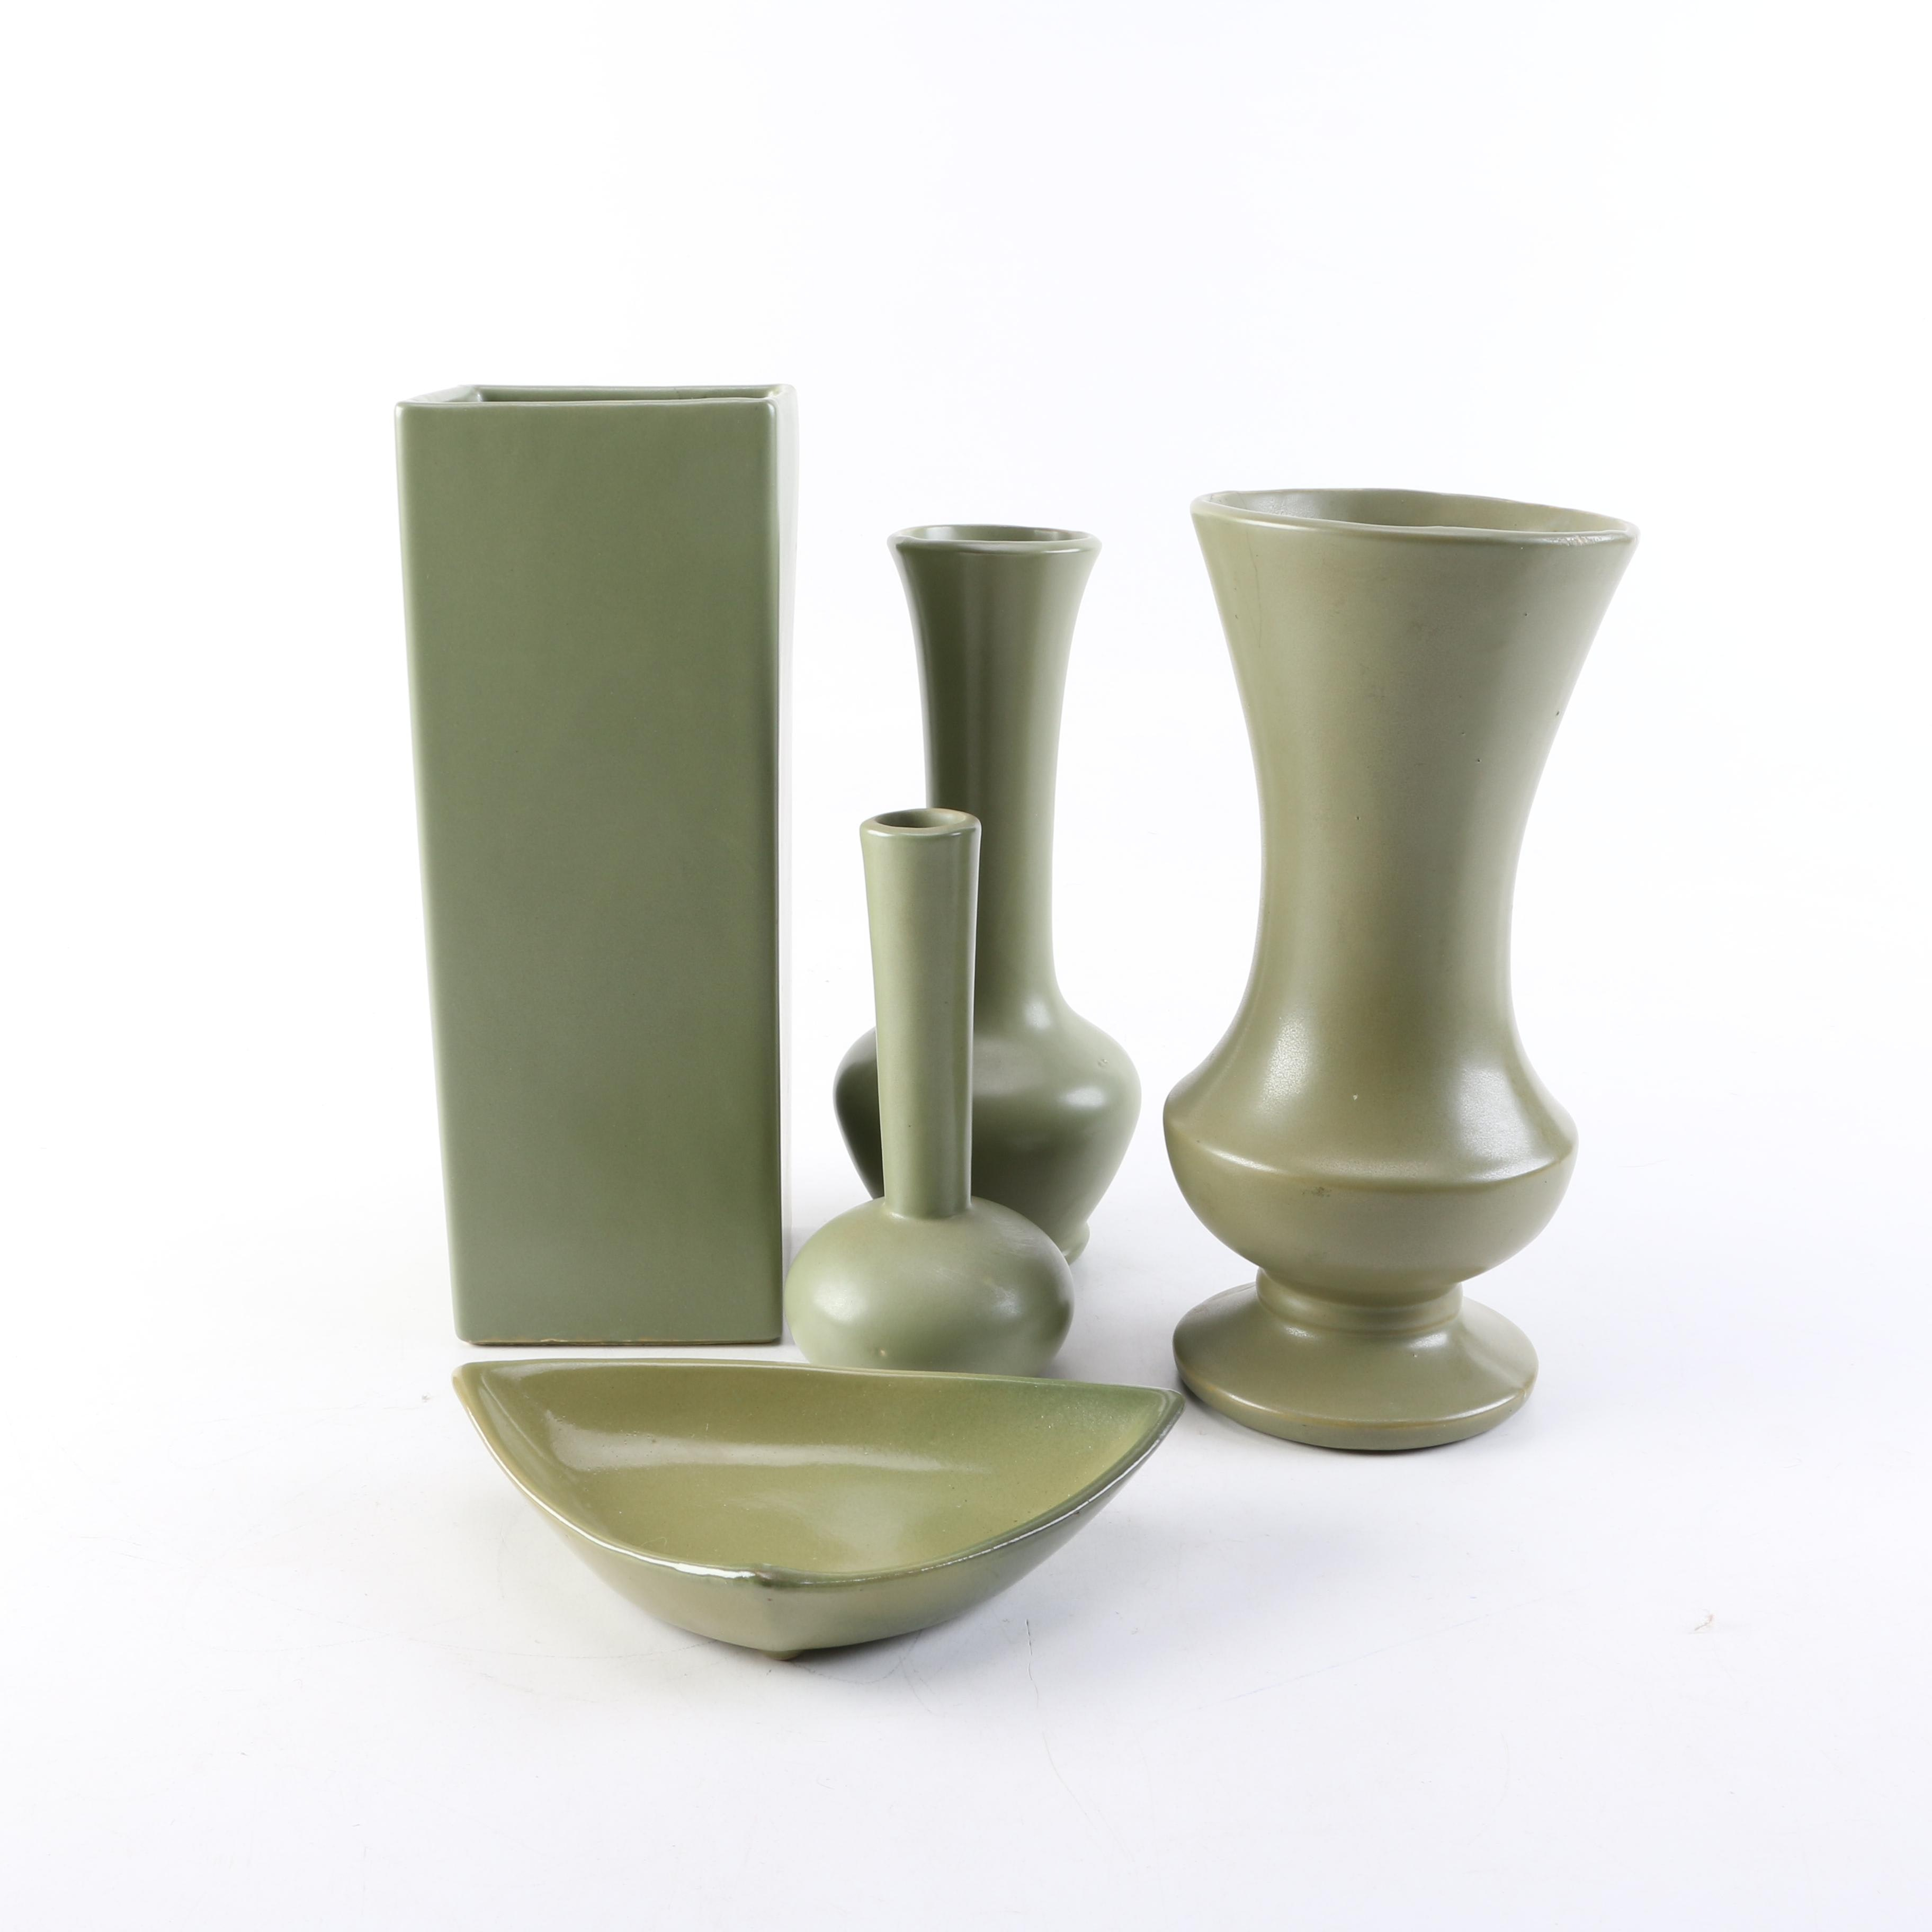 "Green Ceramic Decor Including McCoy ""Floraline"" Pottery"